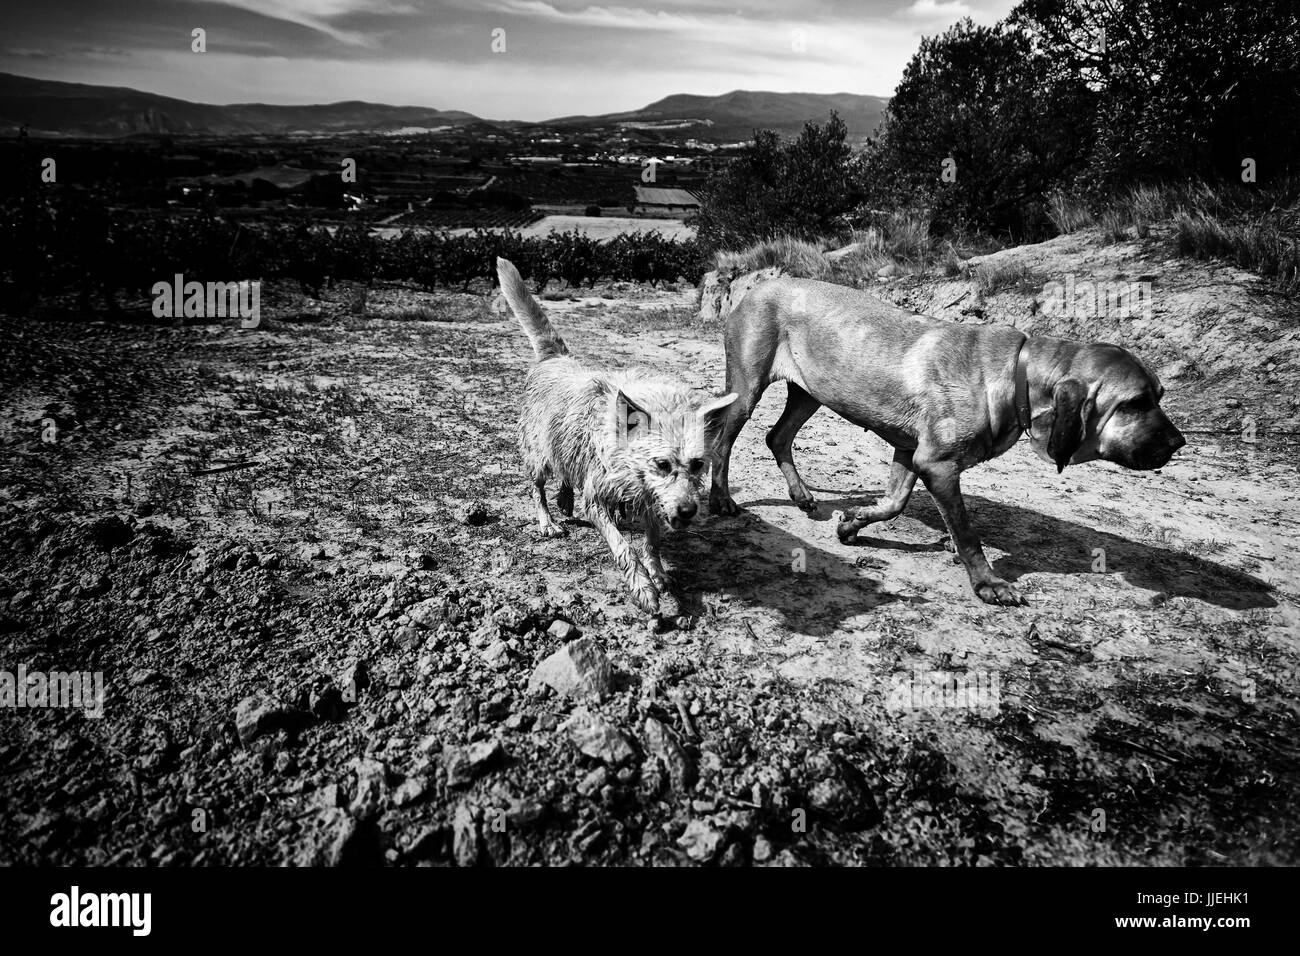 Two dogs running and enjoying in nature, detail of animals in the field - Stock Image